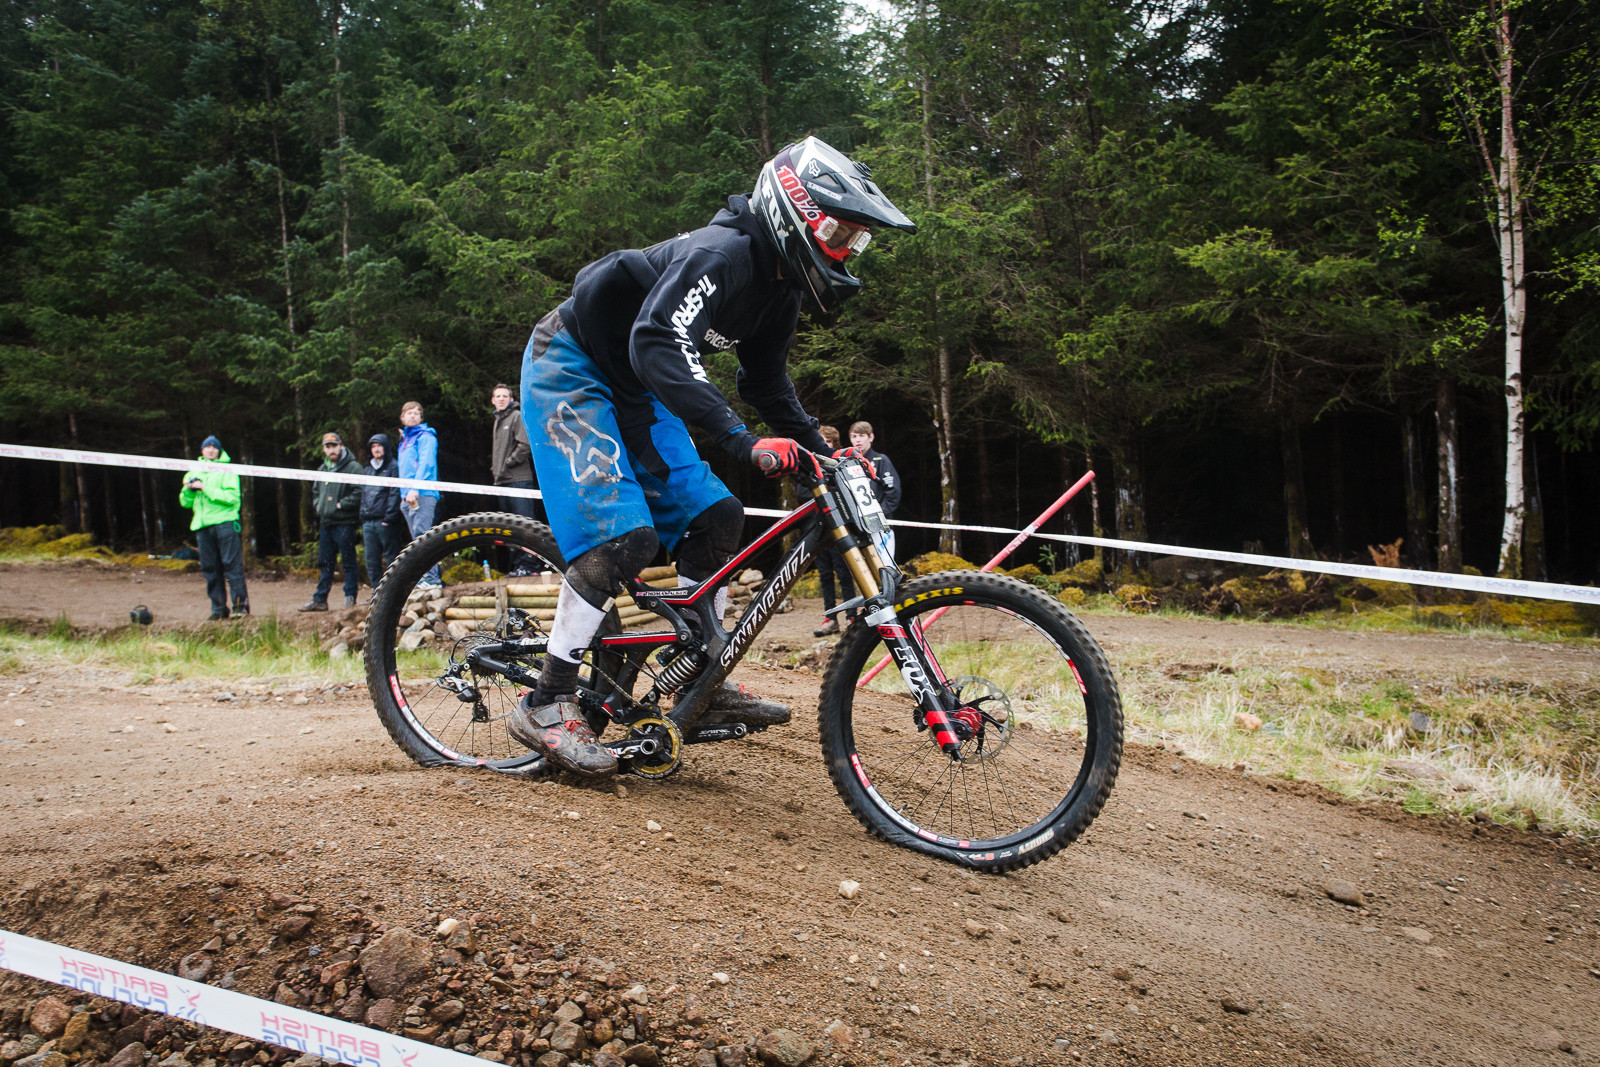 G-Out Fort William - Santa Cruz V10c - G-Out Project - Fort William BDS 2015 - Mountain Biking Pictures - Vital MTB